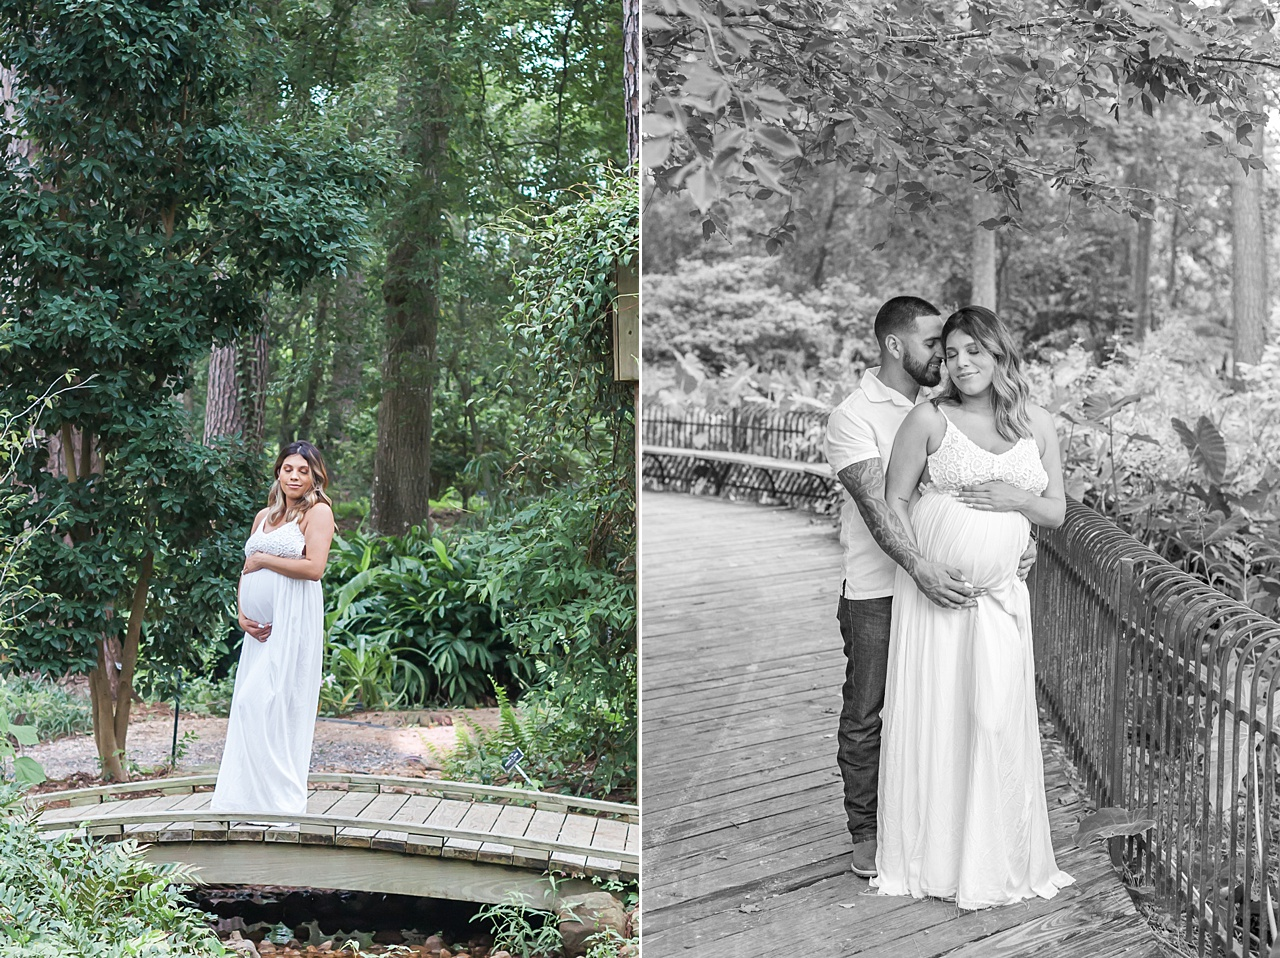 couples maternity session featuring mama-to-be in a white gown at mercer arboretum by kristal bean photography